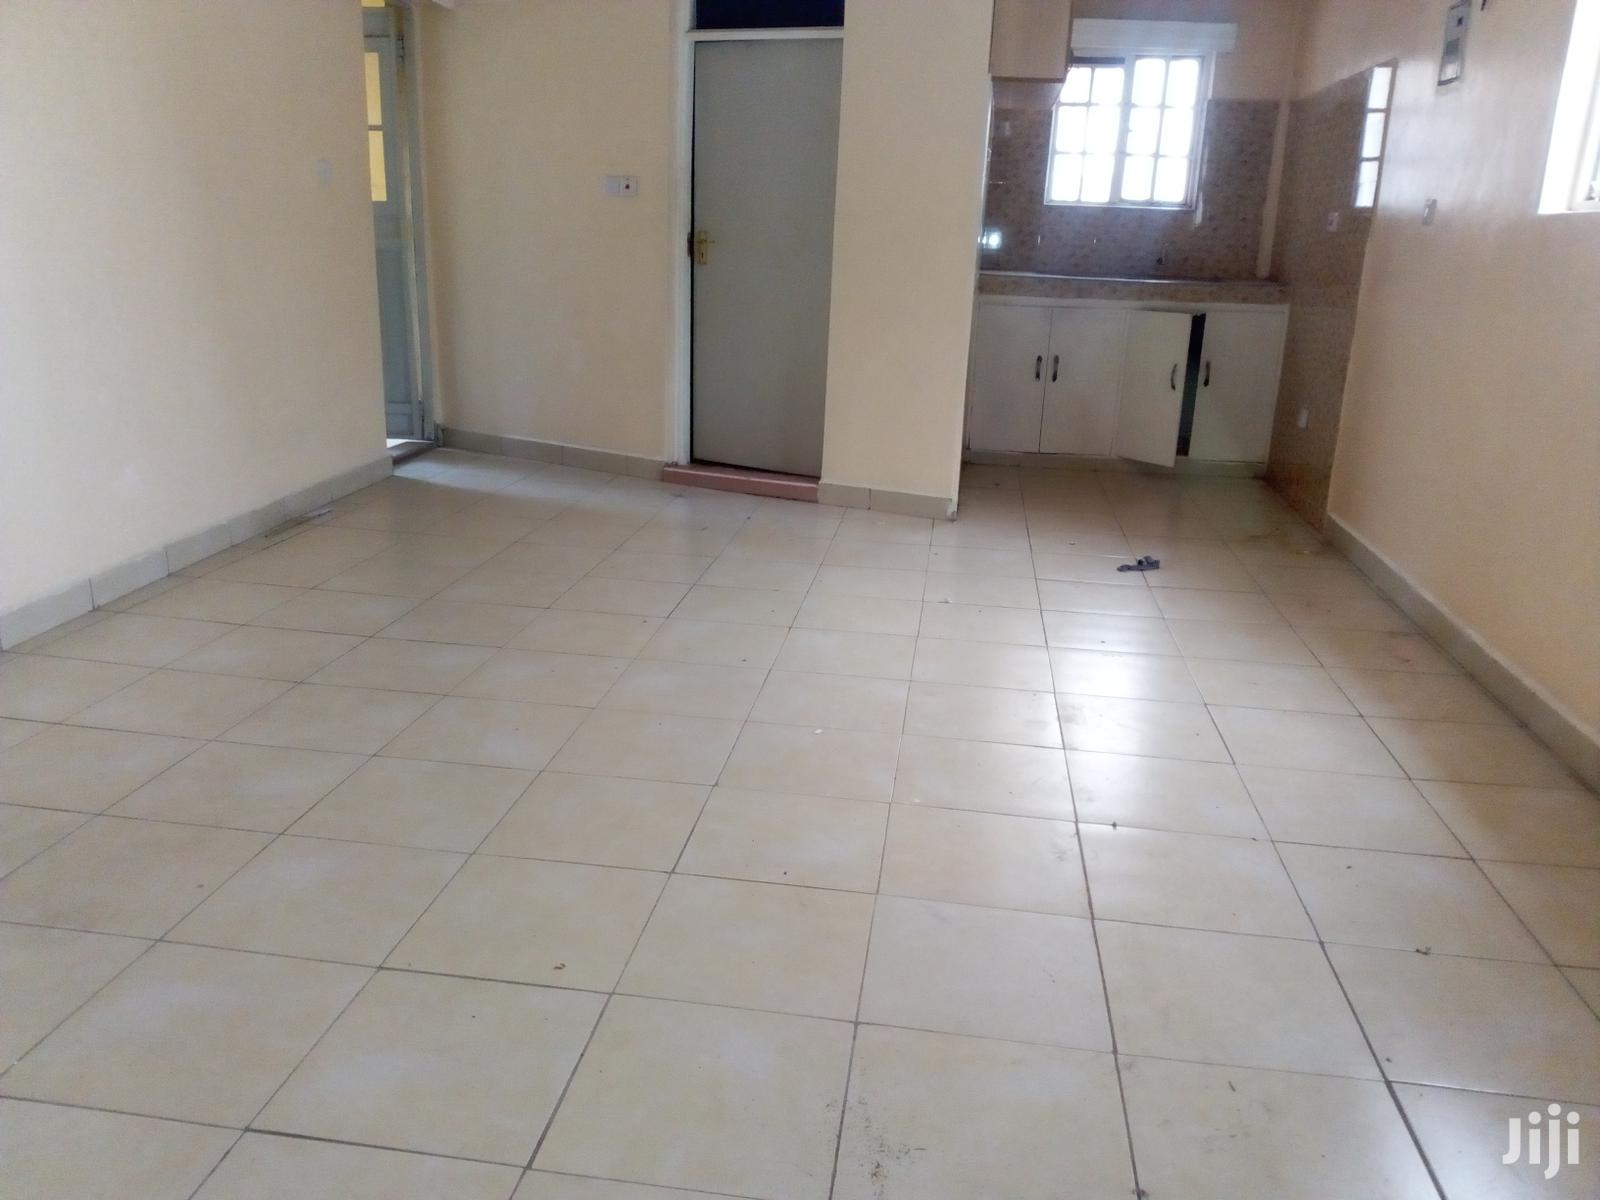 One Bedroom Imara Daima | Houses & Apartments For Rent for sale in Imara Daima, Nairobi, Kenya